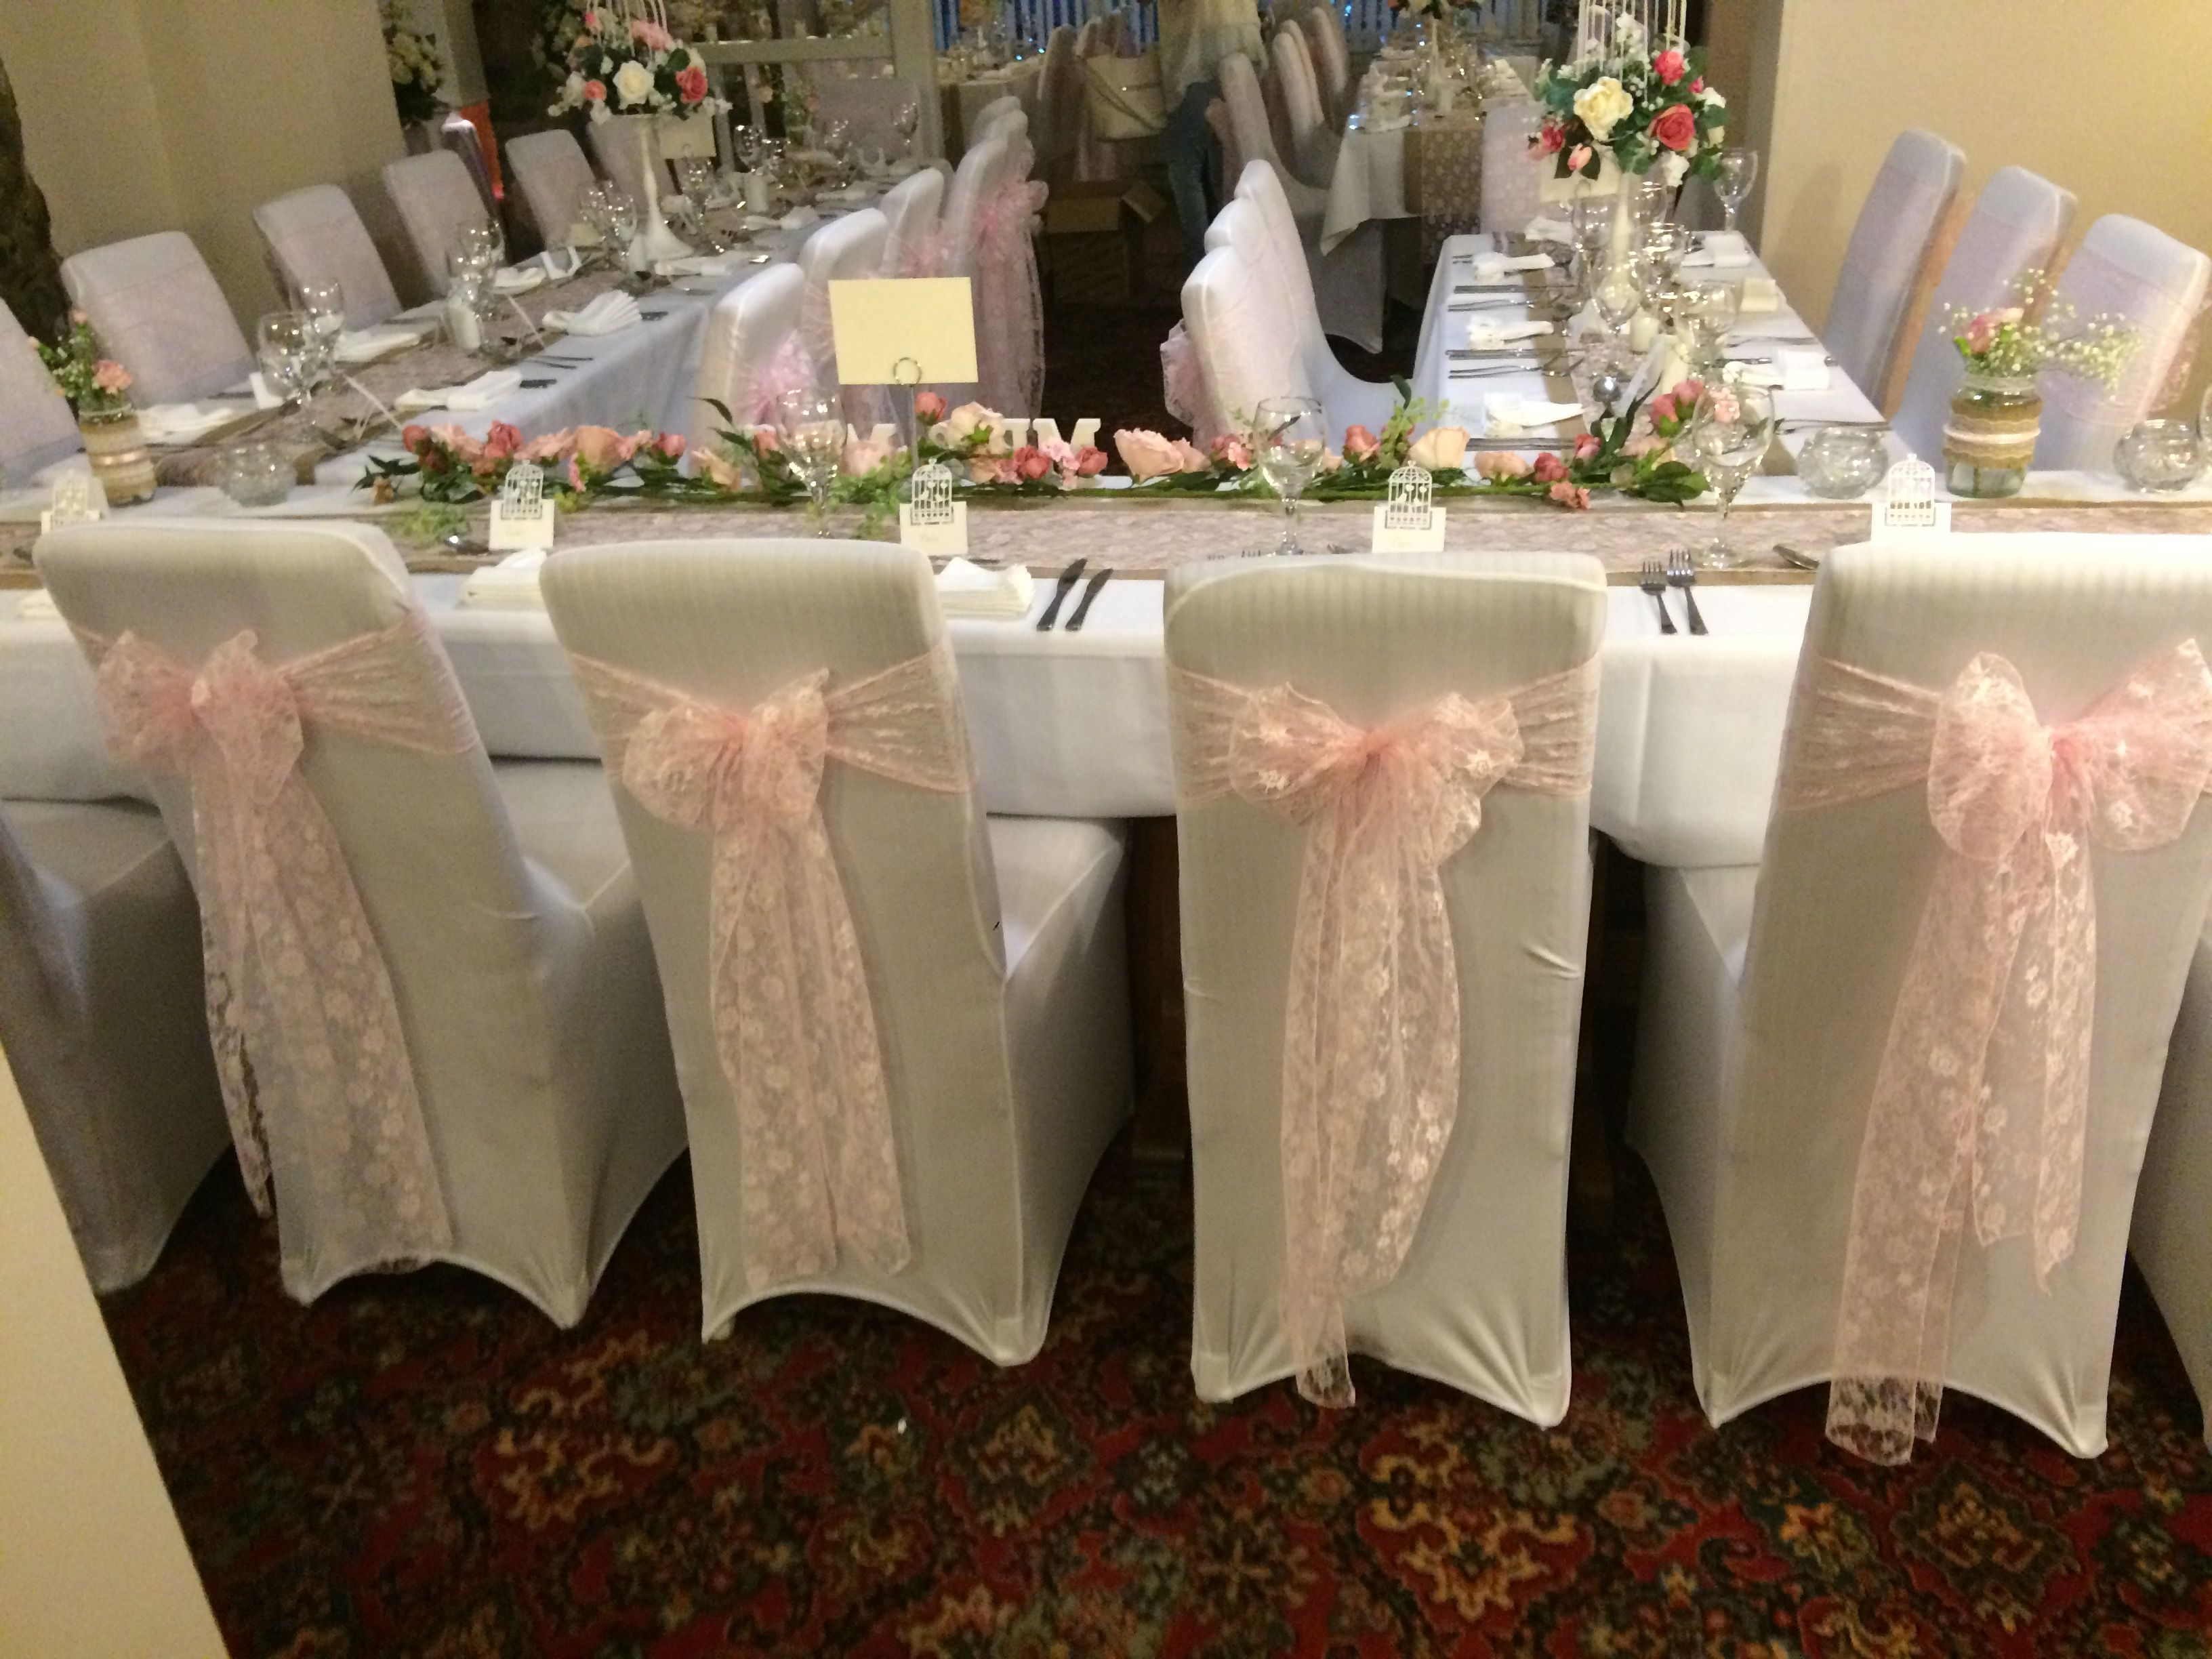 Chair Covers With Pink Lace Sashes Hire In South Wales From Www Affinityeventdecorators Com Wedding Table Settings Fairy Light Backdrops Wedding Hire